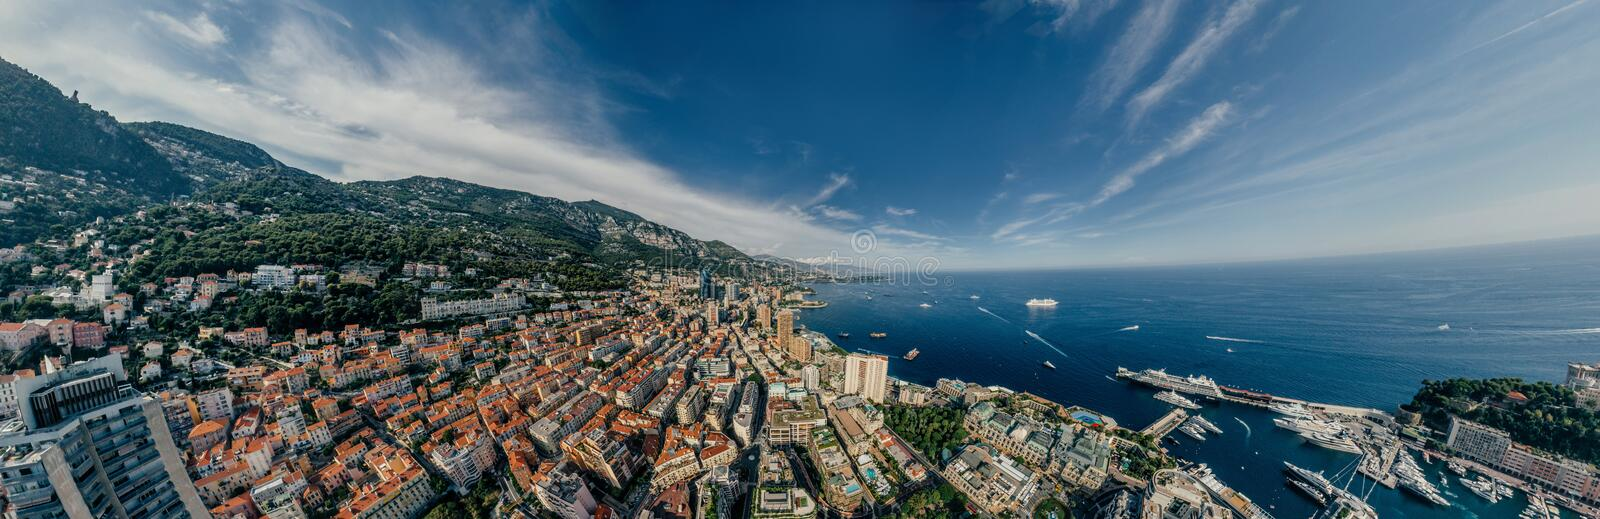 Mountains in Monaco Monte-Carlo city riviera Drone summer photo Air 360 vr virtual reality drone panorama. Sphere Panorama Summer Sea Coastline in Monaco Air royalty free stock photography